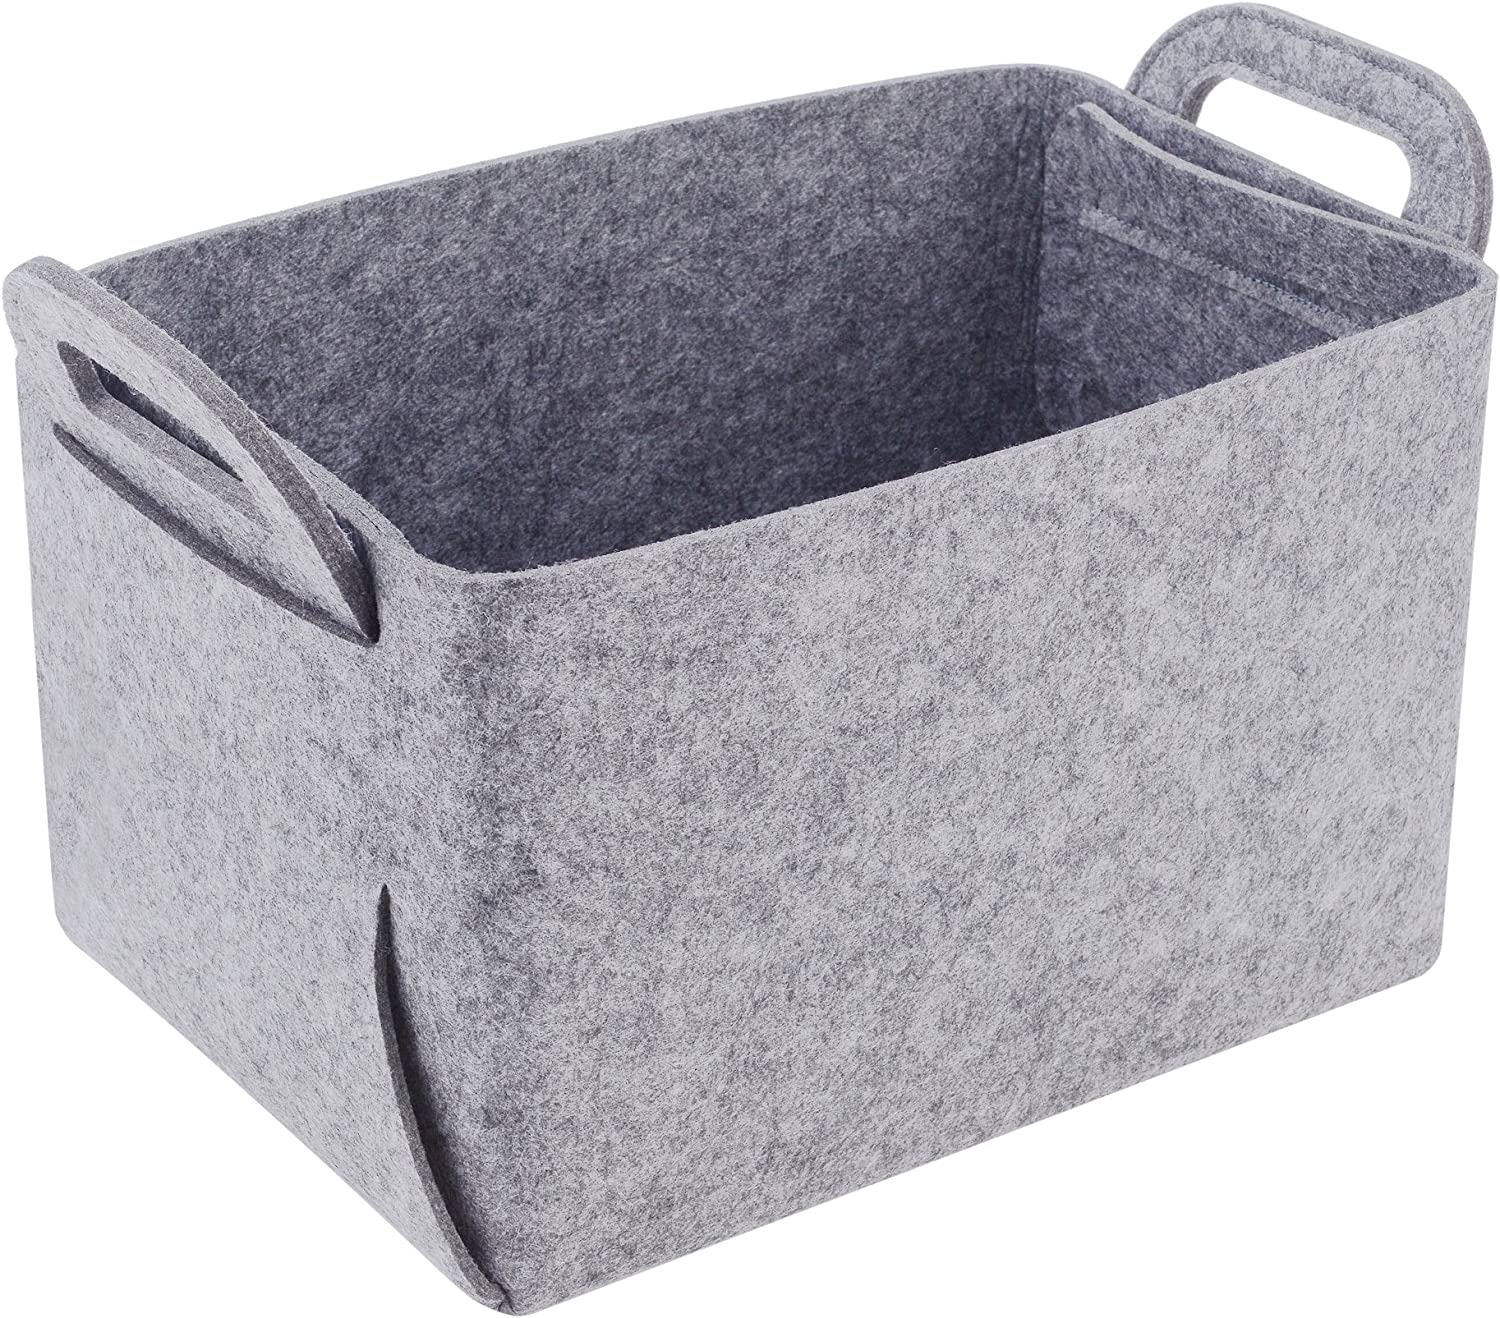 Storage Basket Felt Storage Bin Collapsible & Convenient Box Organizer with Carry Handles for Office Bedroom Closet Babies Nursery Toys DVD Laundry Organizing